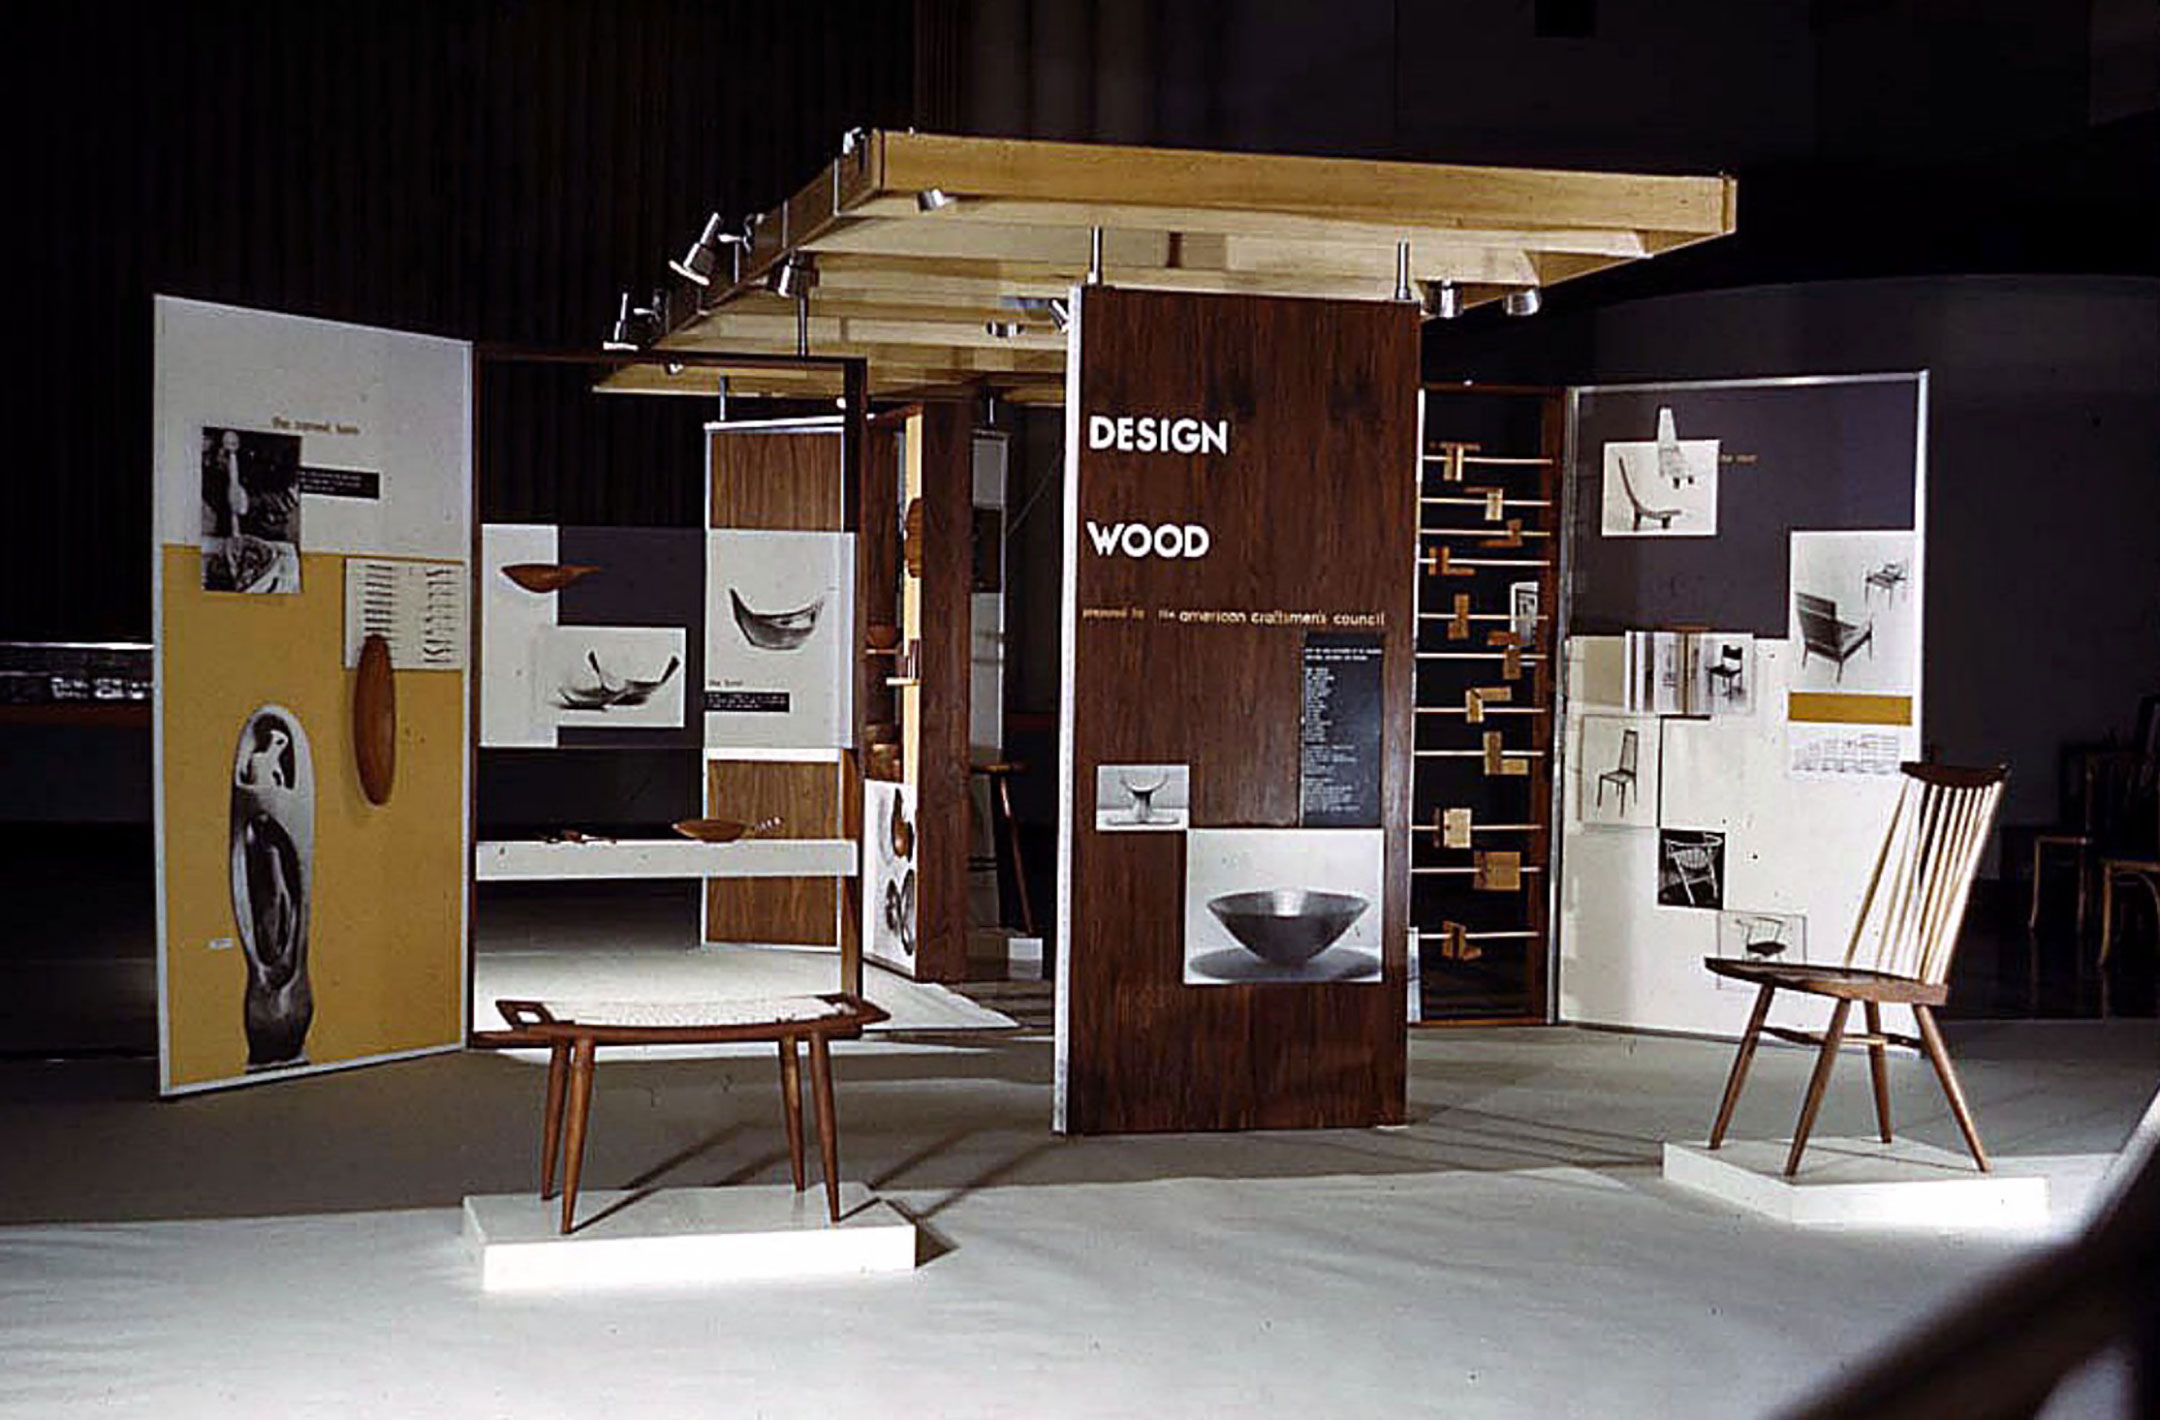 The 1957  Design Wood  exhibit was conceived as an educational outreach program of the ACC. Emil's bowls are visible in the back central table and panel. Courtesy of the American Craft Council.